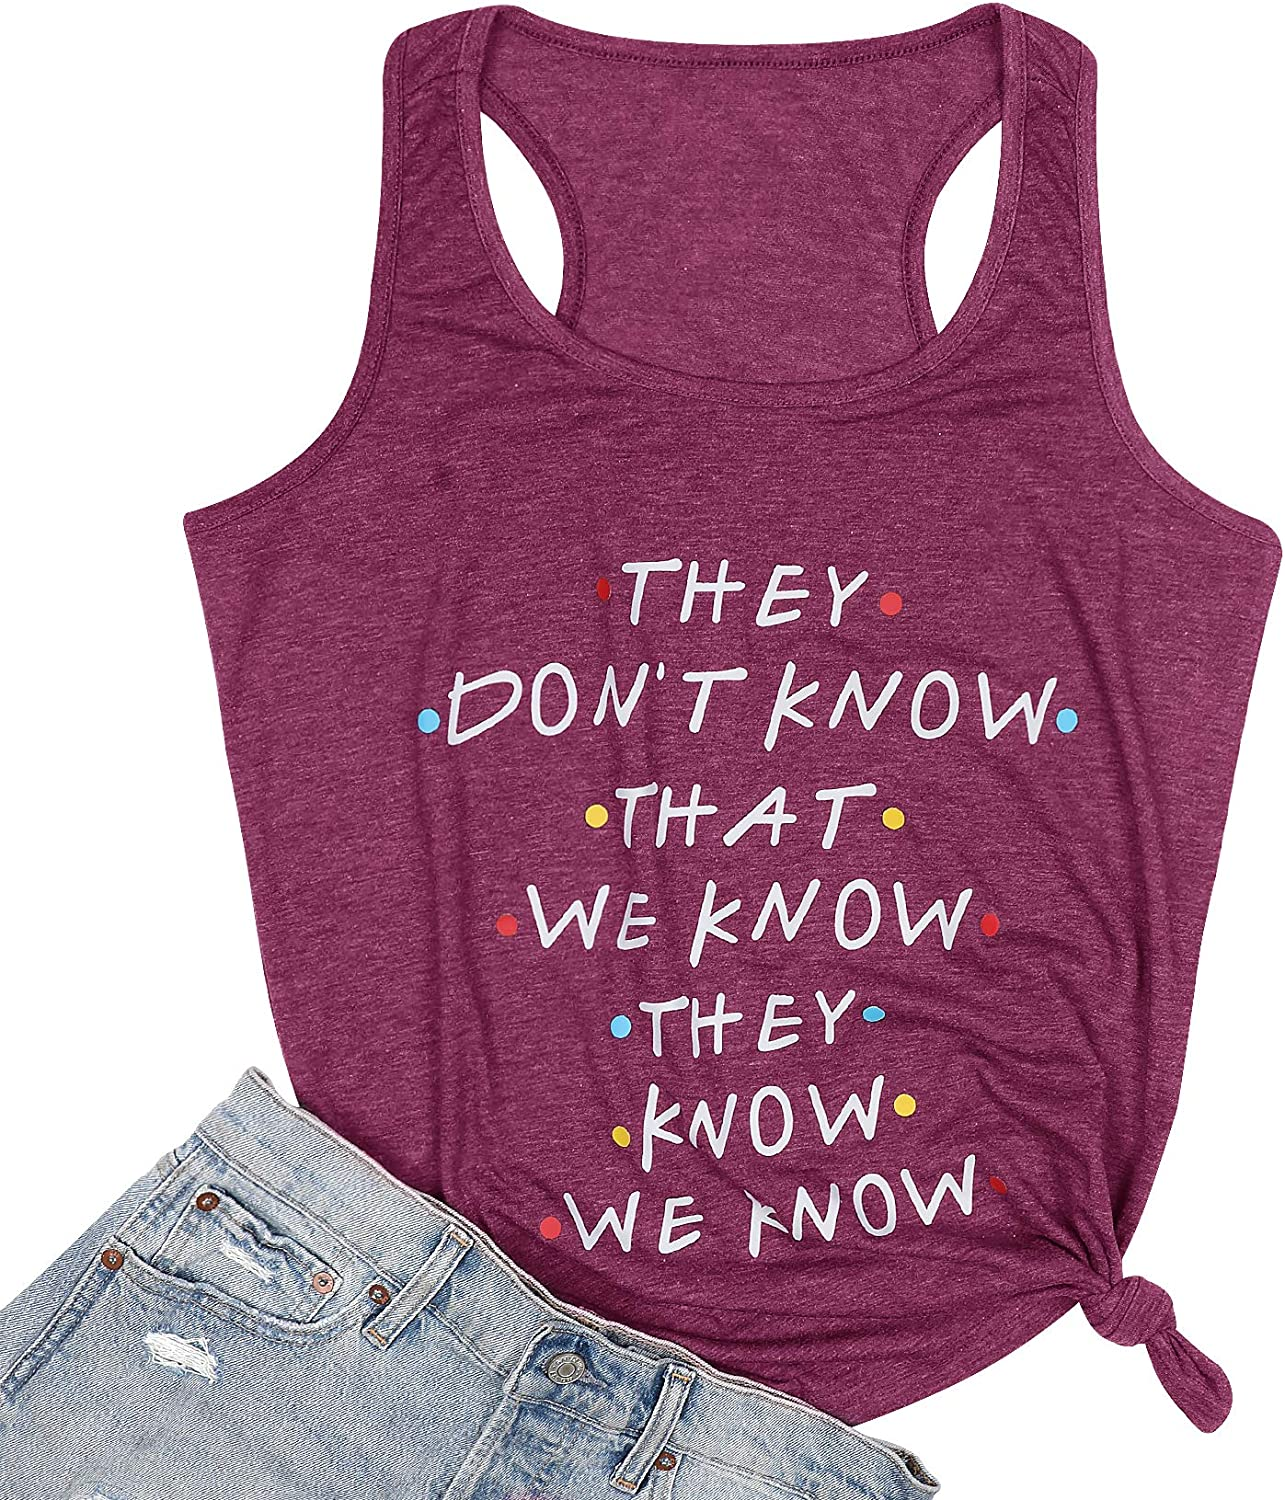 LUKYCILD Friends Shirt They Don't Know That We Know They Know T Shirt Women Short Sleeve Casual Letter Print Top Tee